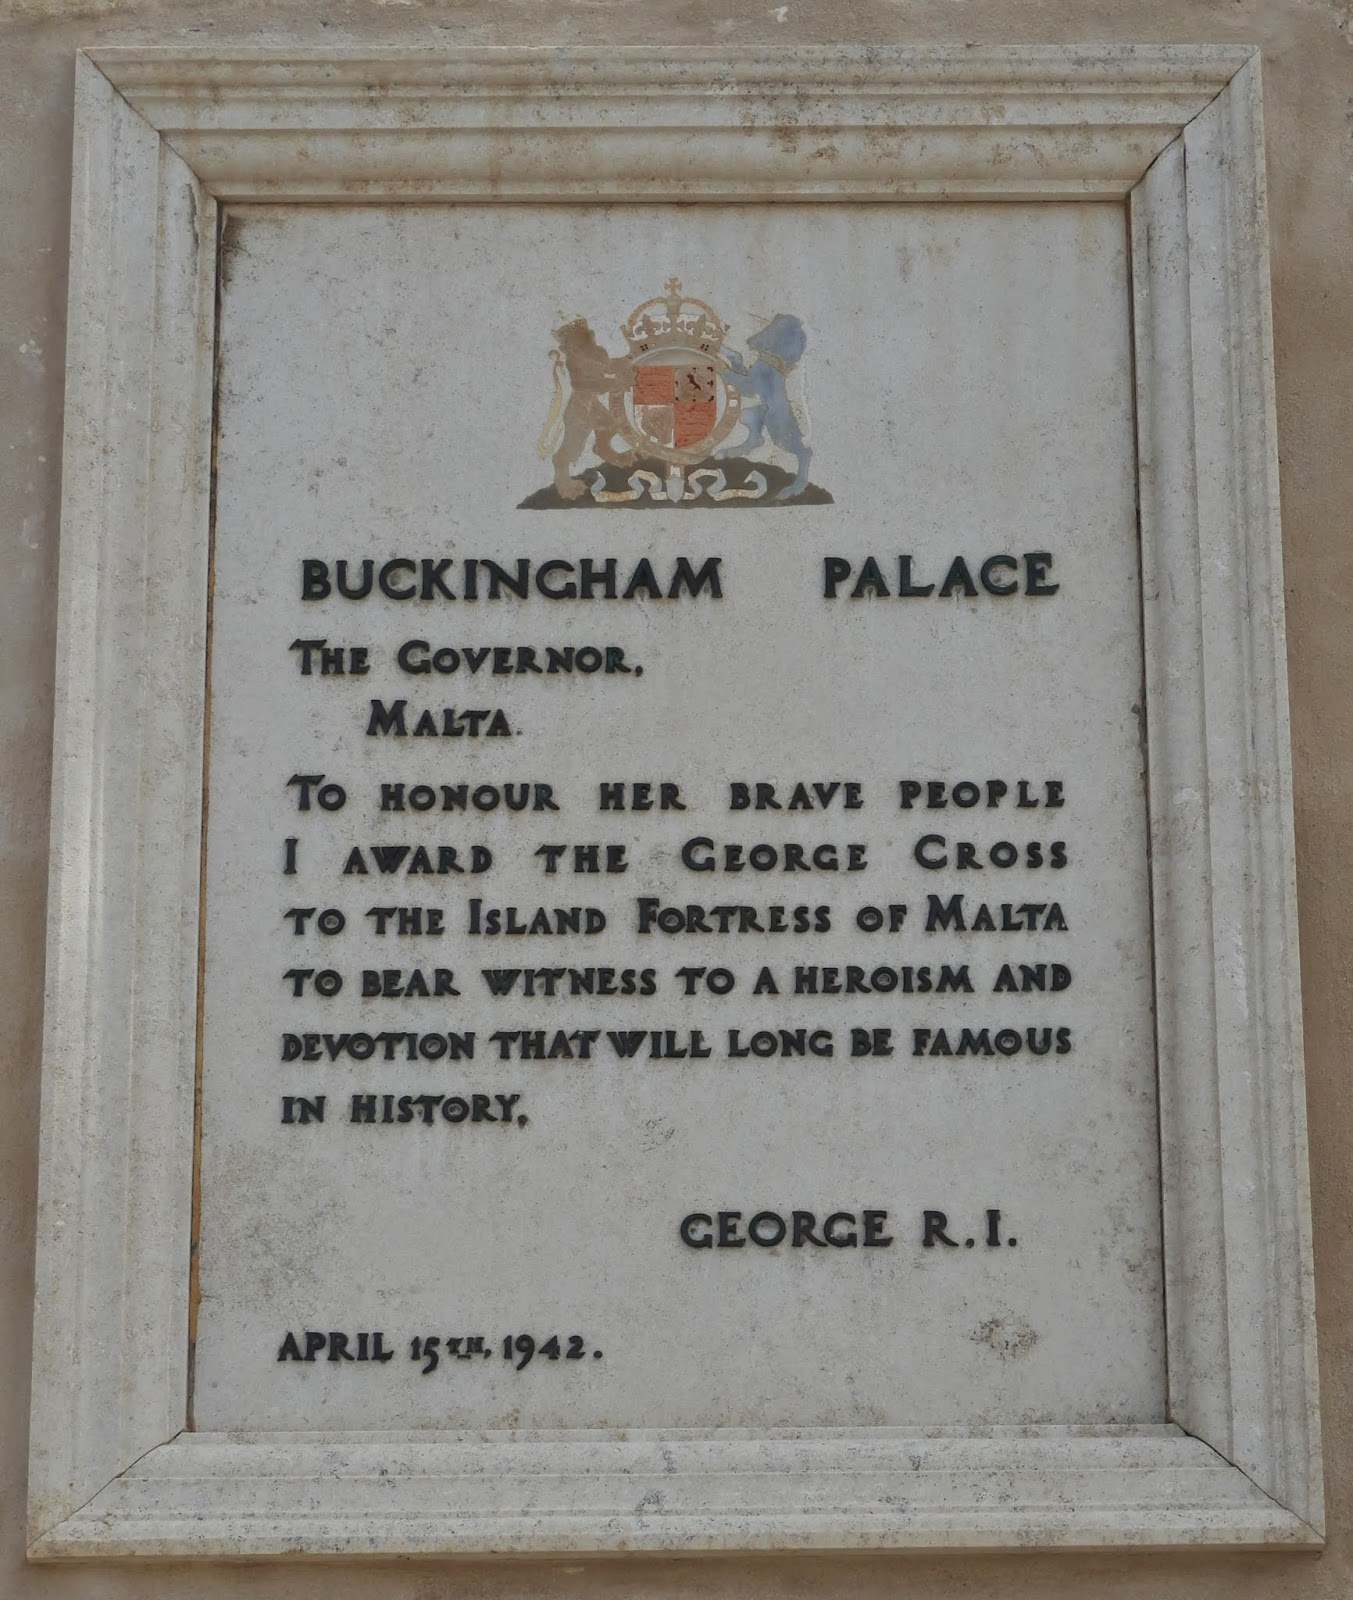 George Cross award to the people of Malta by King George VI